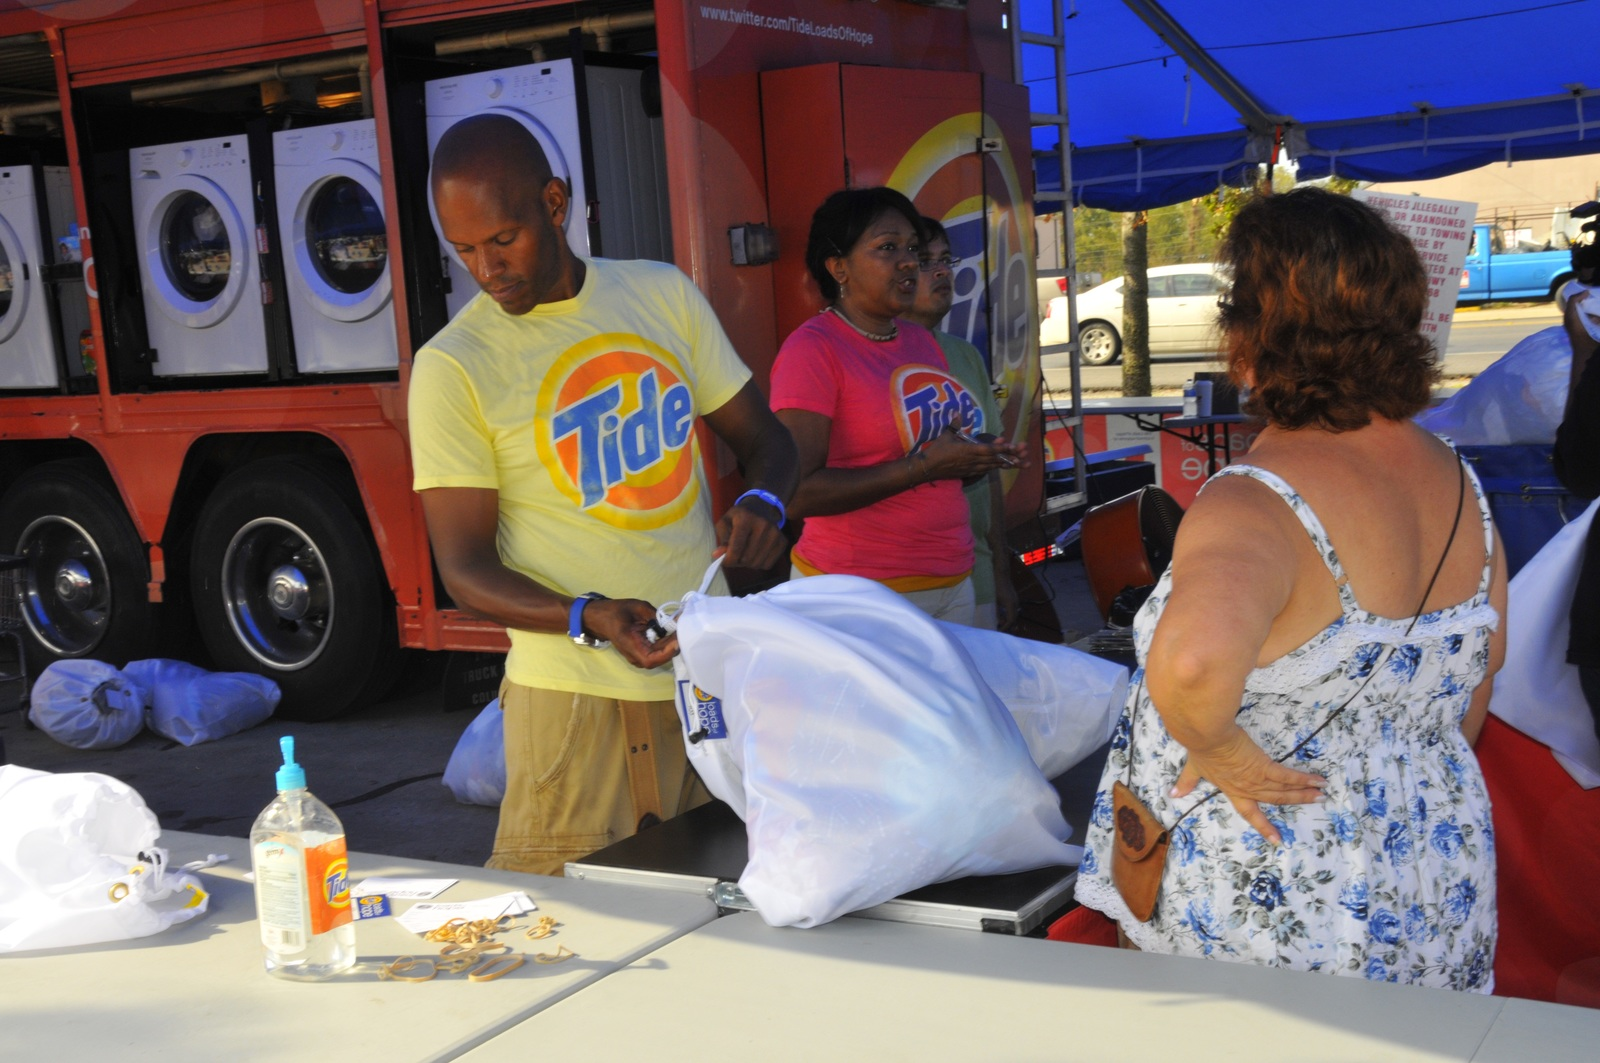 Coastal Storm ^ Flooding ^ Hurricane/Tropical Storm - LaPlace, La. , Sep. 4, 2012 -- Roger Bostic, left, and Raynell Parker McNeil bag laundry for washing, drying, and folding for a family affected by Hurricane Isaac.  Hundreds in LaPlace, La affected by Hurricane Isaac have taken advantage of the service provided by Tide at no charge.  Photo by Charles S. Powell/FEMA